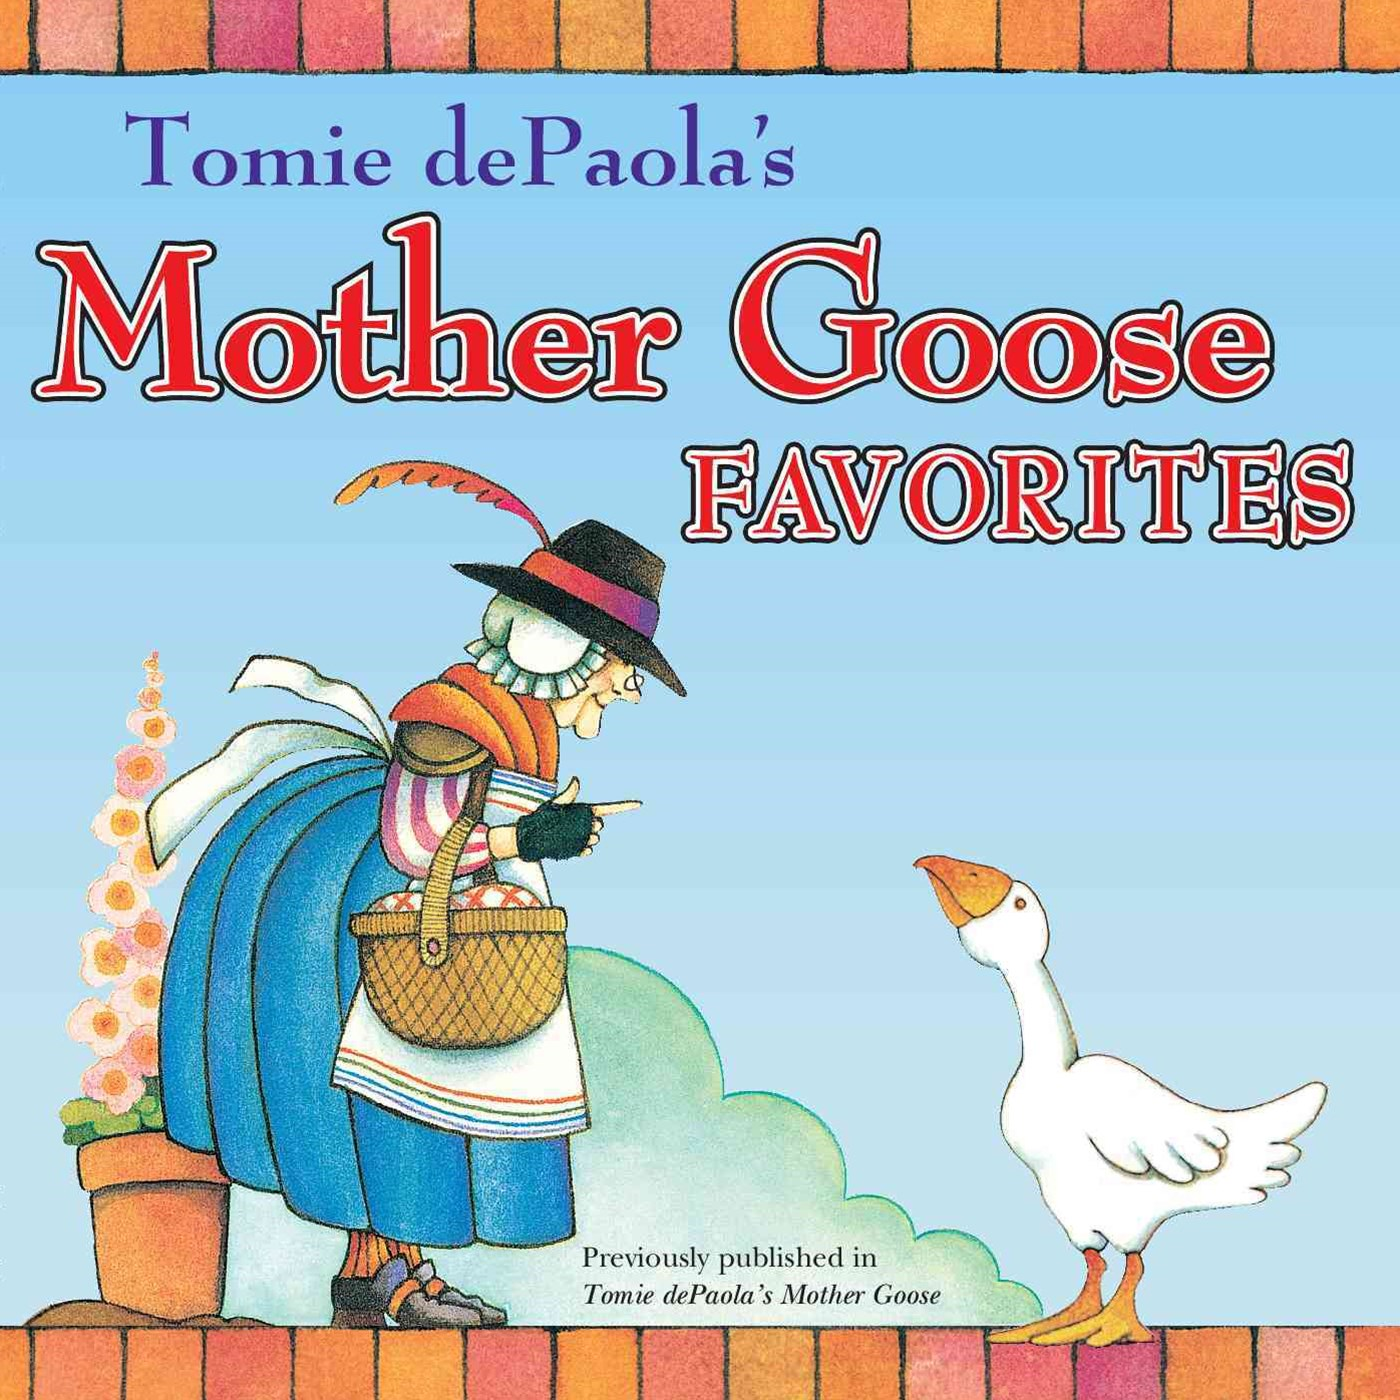 Tomie dePaola's Mother Goose Favorites